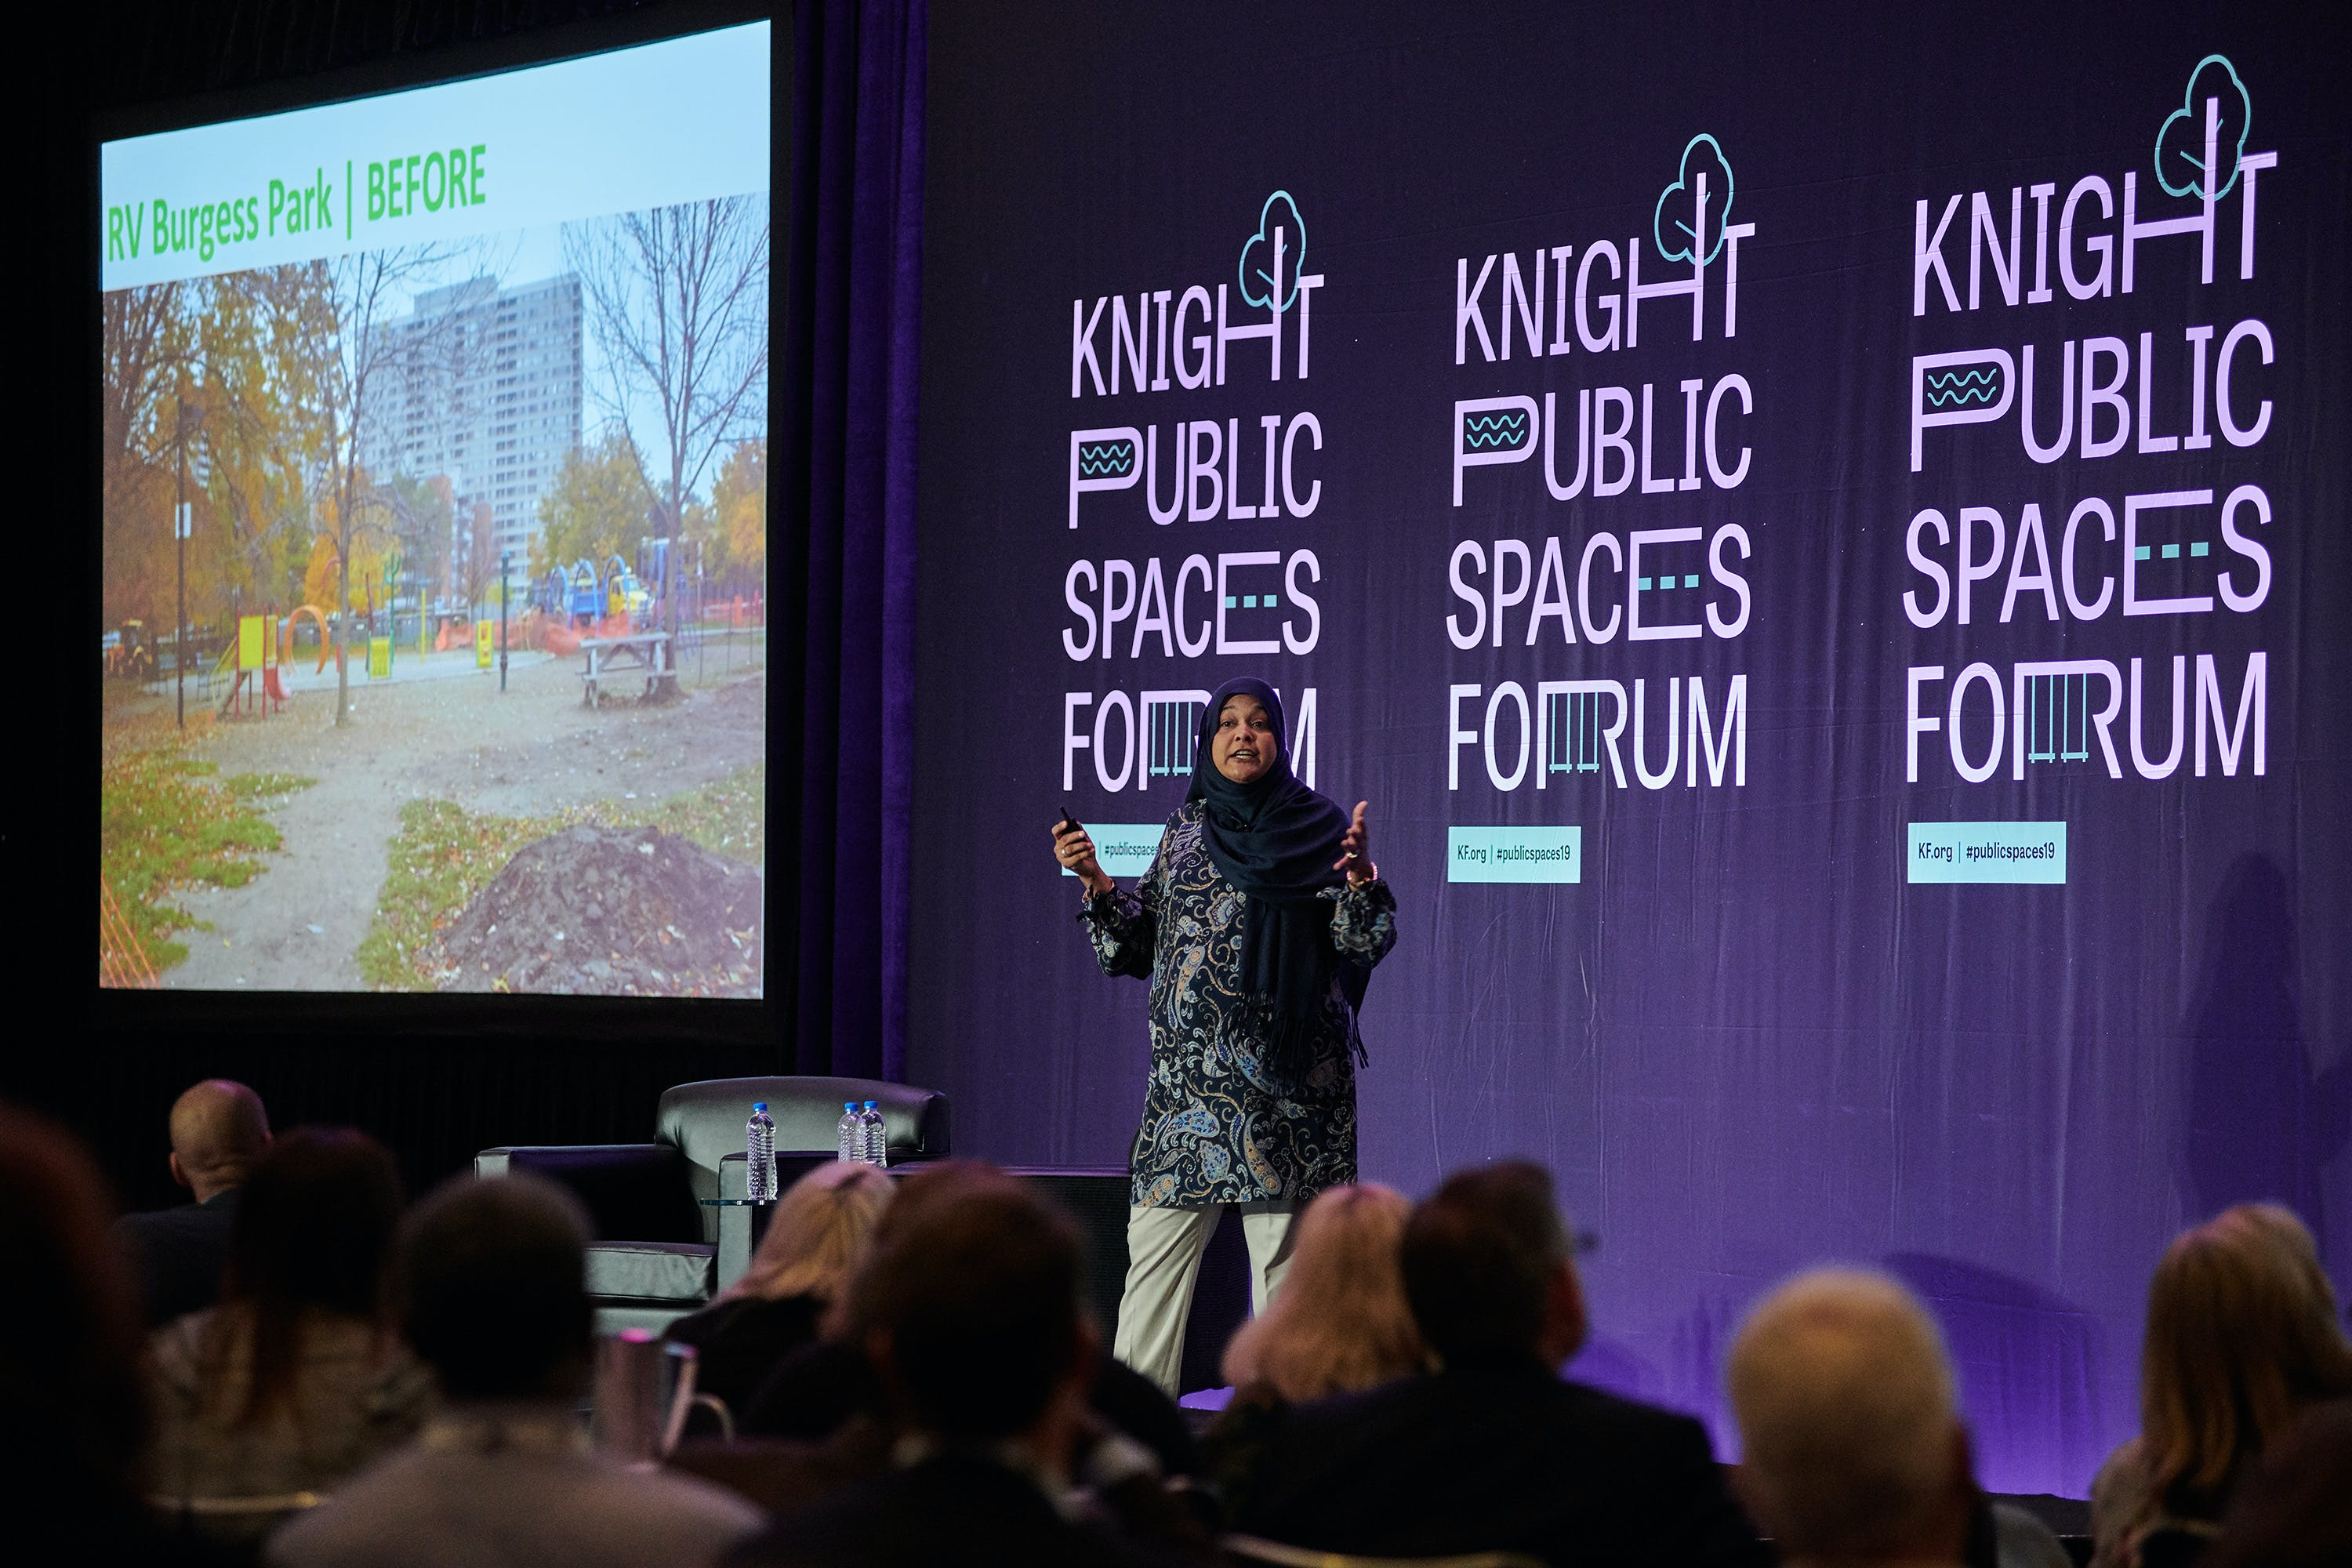 <p><em>Sabina Ali, Chair, Thorncliffe Park Women's Committee, at Knight Public Spaces Forum 2019 </em></p>